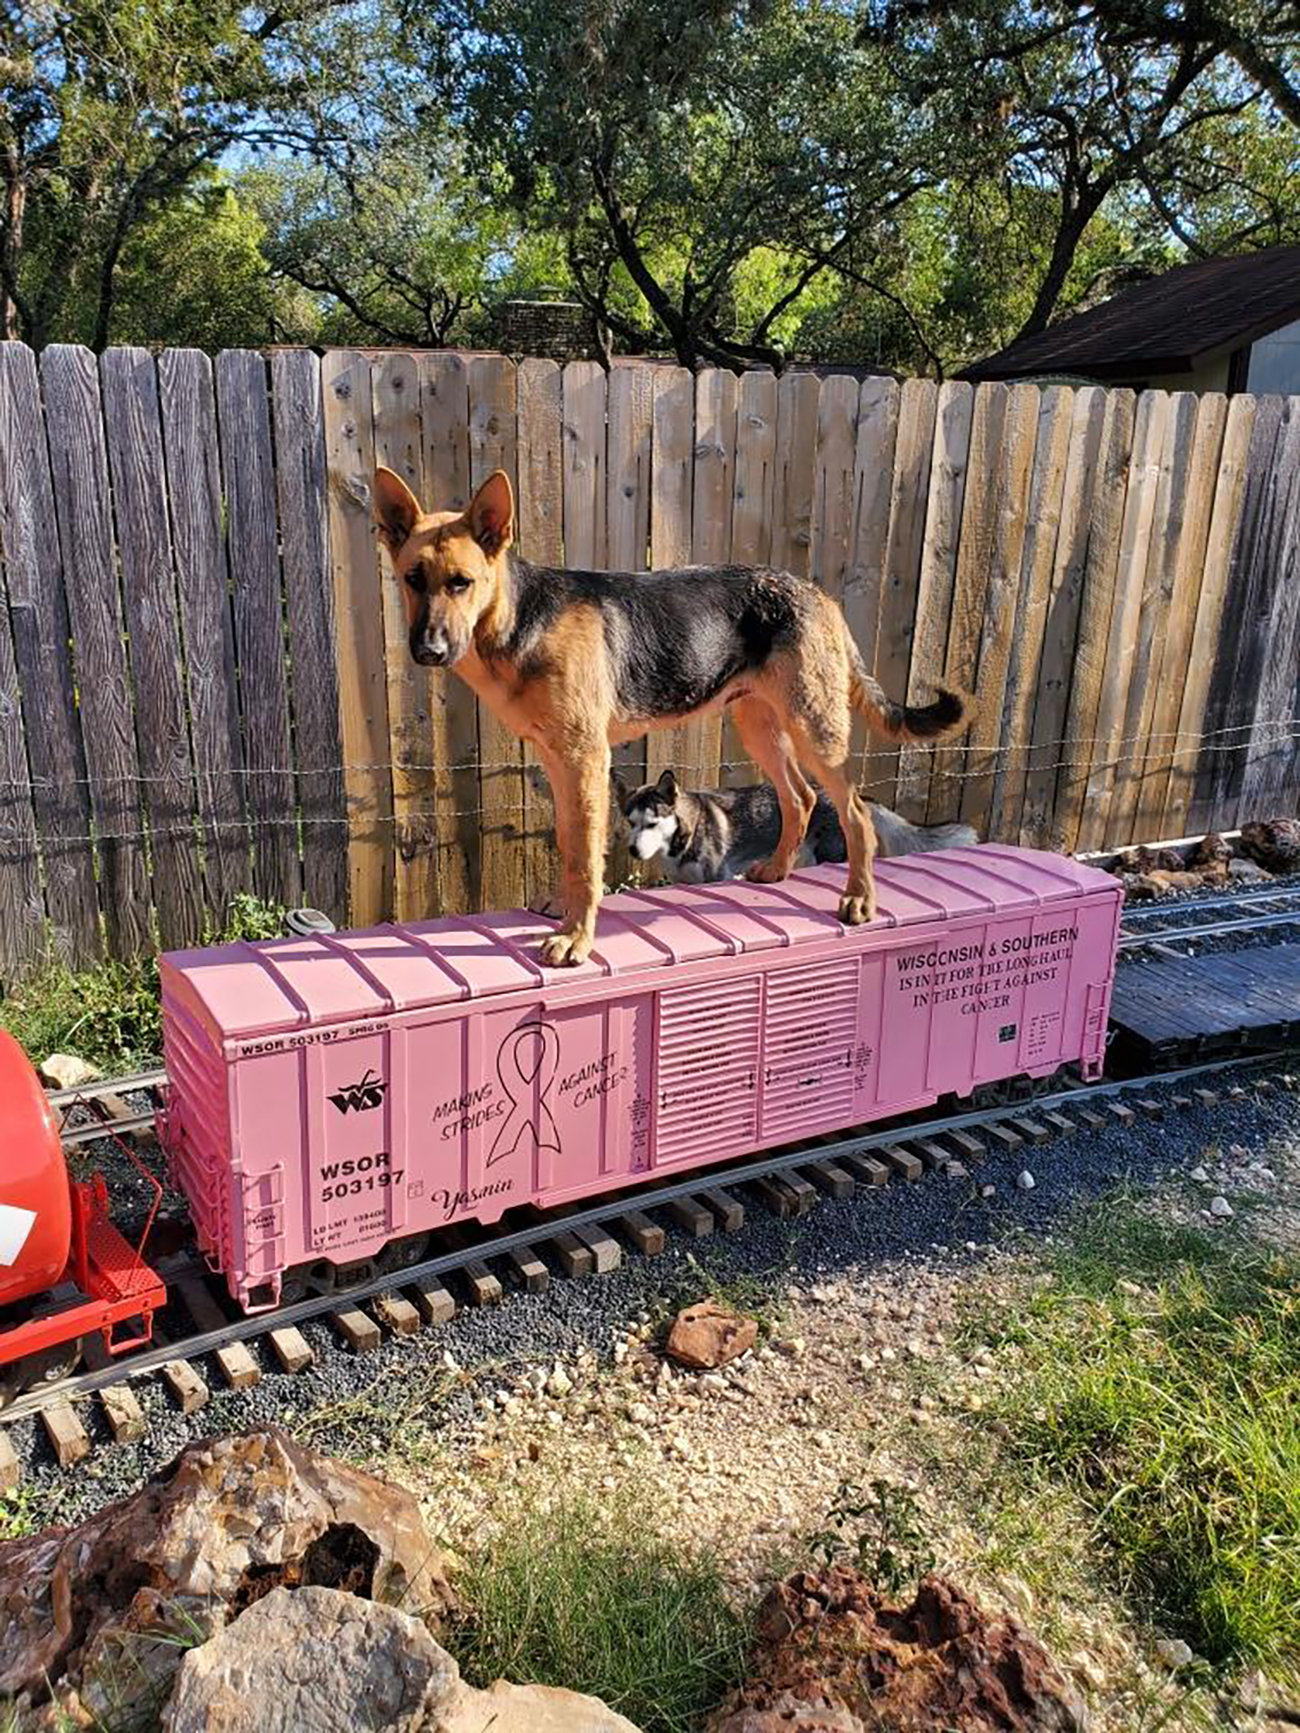 german shepherd on pink box car